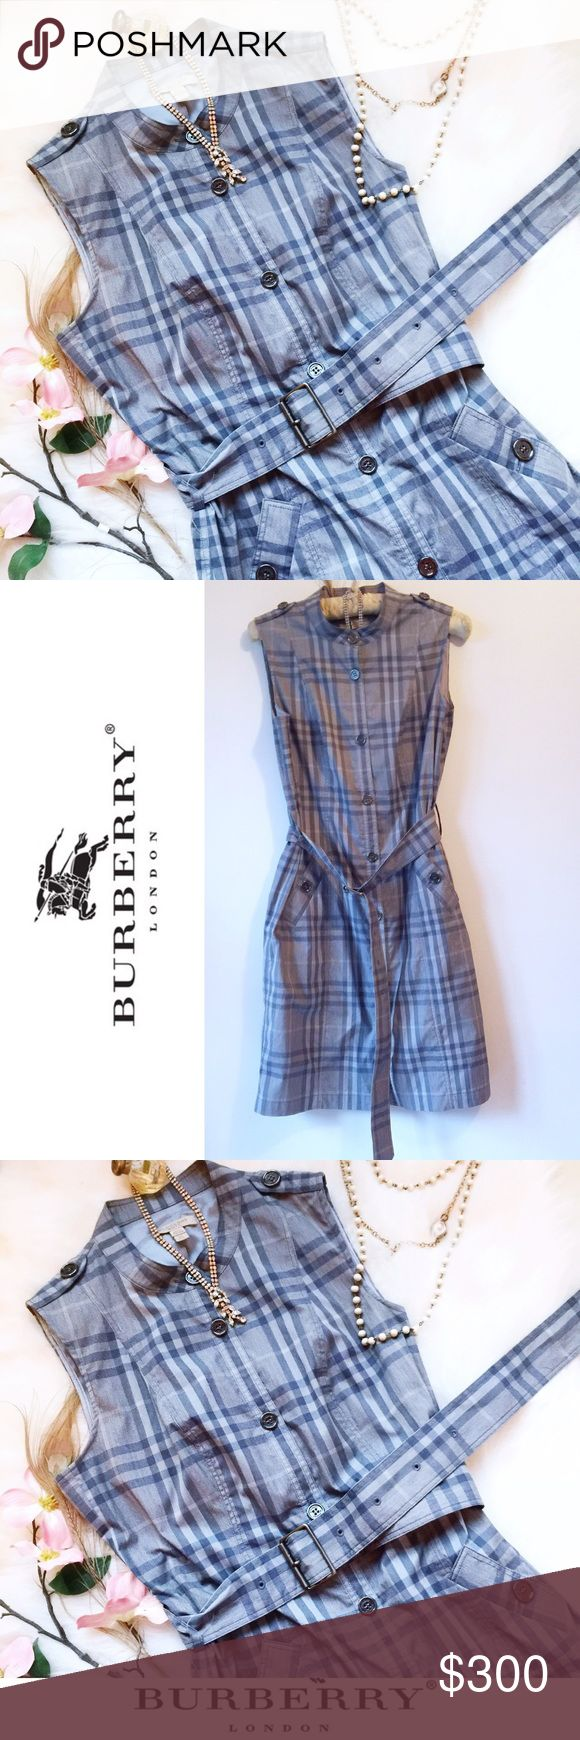 . Blue Belted Shirt Dress in plaid 6 NWOT • \\Burberry Brit// Blue Belted Shirt Dress in plaid ::: US size [6] ::: Adjustable belt ::: Authentic + rare pattern + design by Burberry ::: Fully lined + buttons to close ::: Please ask any + all questions prior to purchase ::: Photos of actual items for sale ::: Bought originally from Harrod's London for [$450] • Burberry Dresses Midi